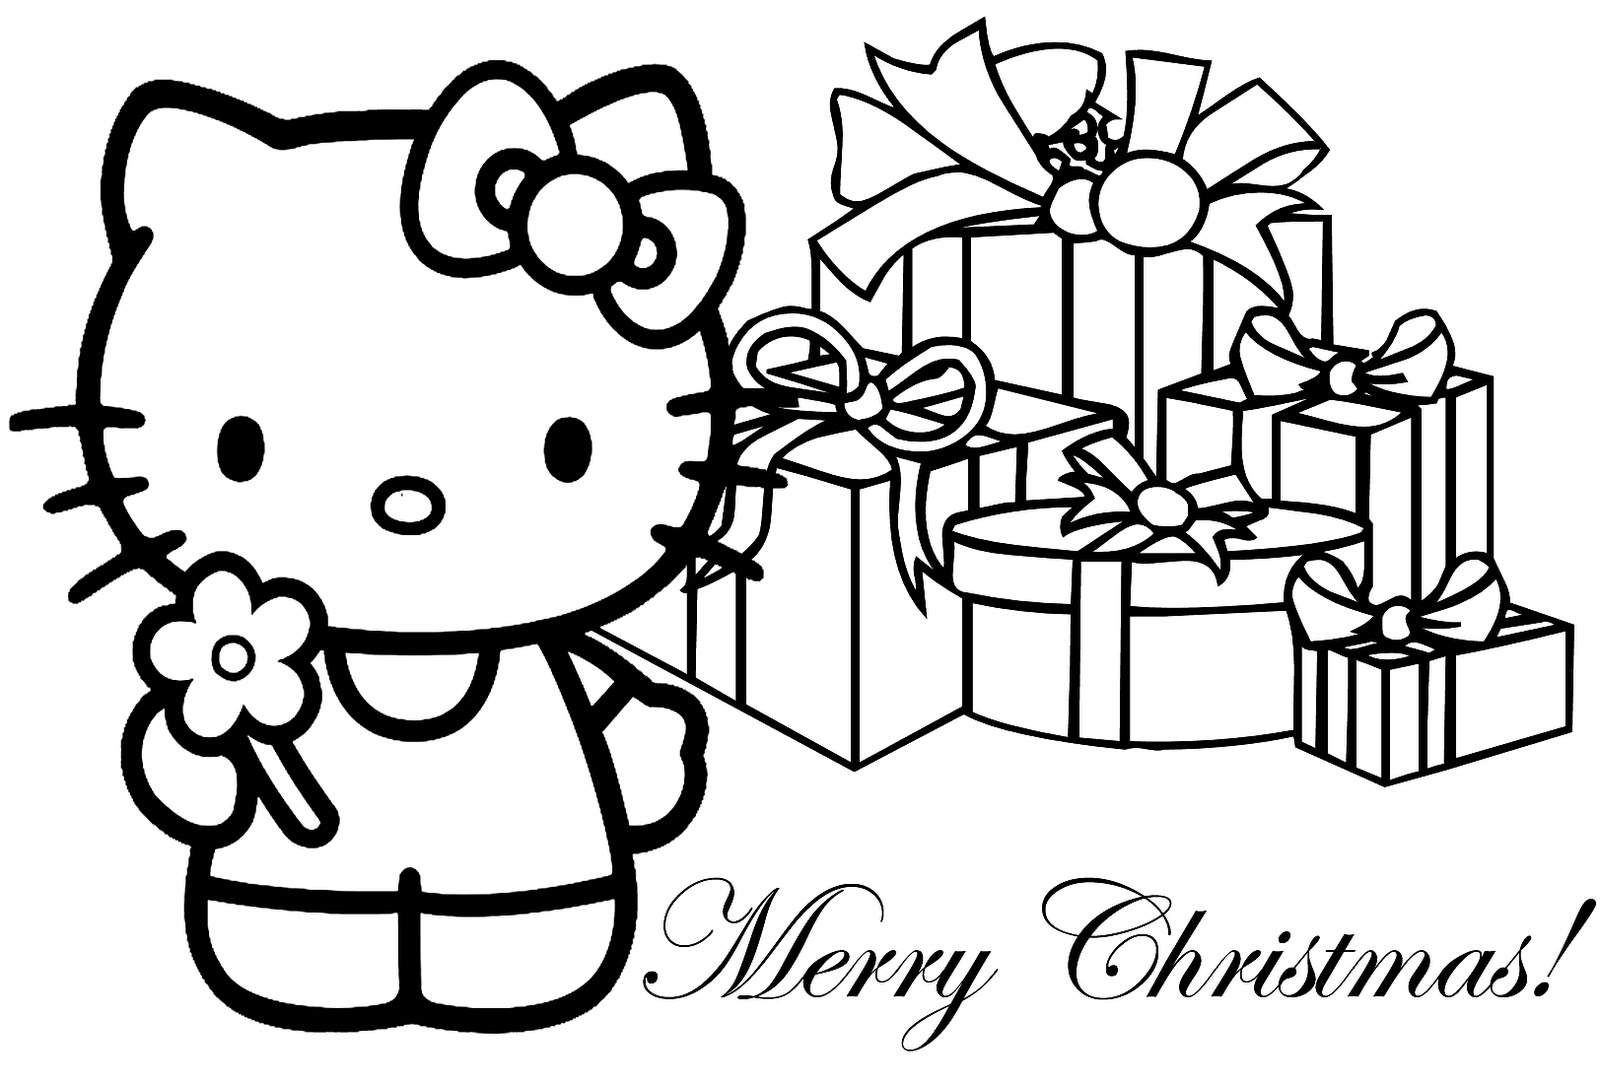 Hello Kitty Christmas Coloring Page Coloring Pages For Kids Coloring Pages F Hello Kitty Colouring Pages Hello Kitty Coloring Merry Christmas Coloring Pages